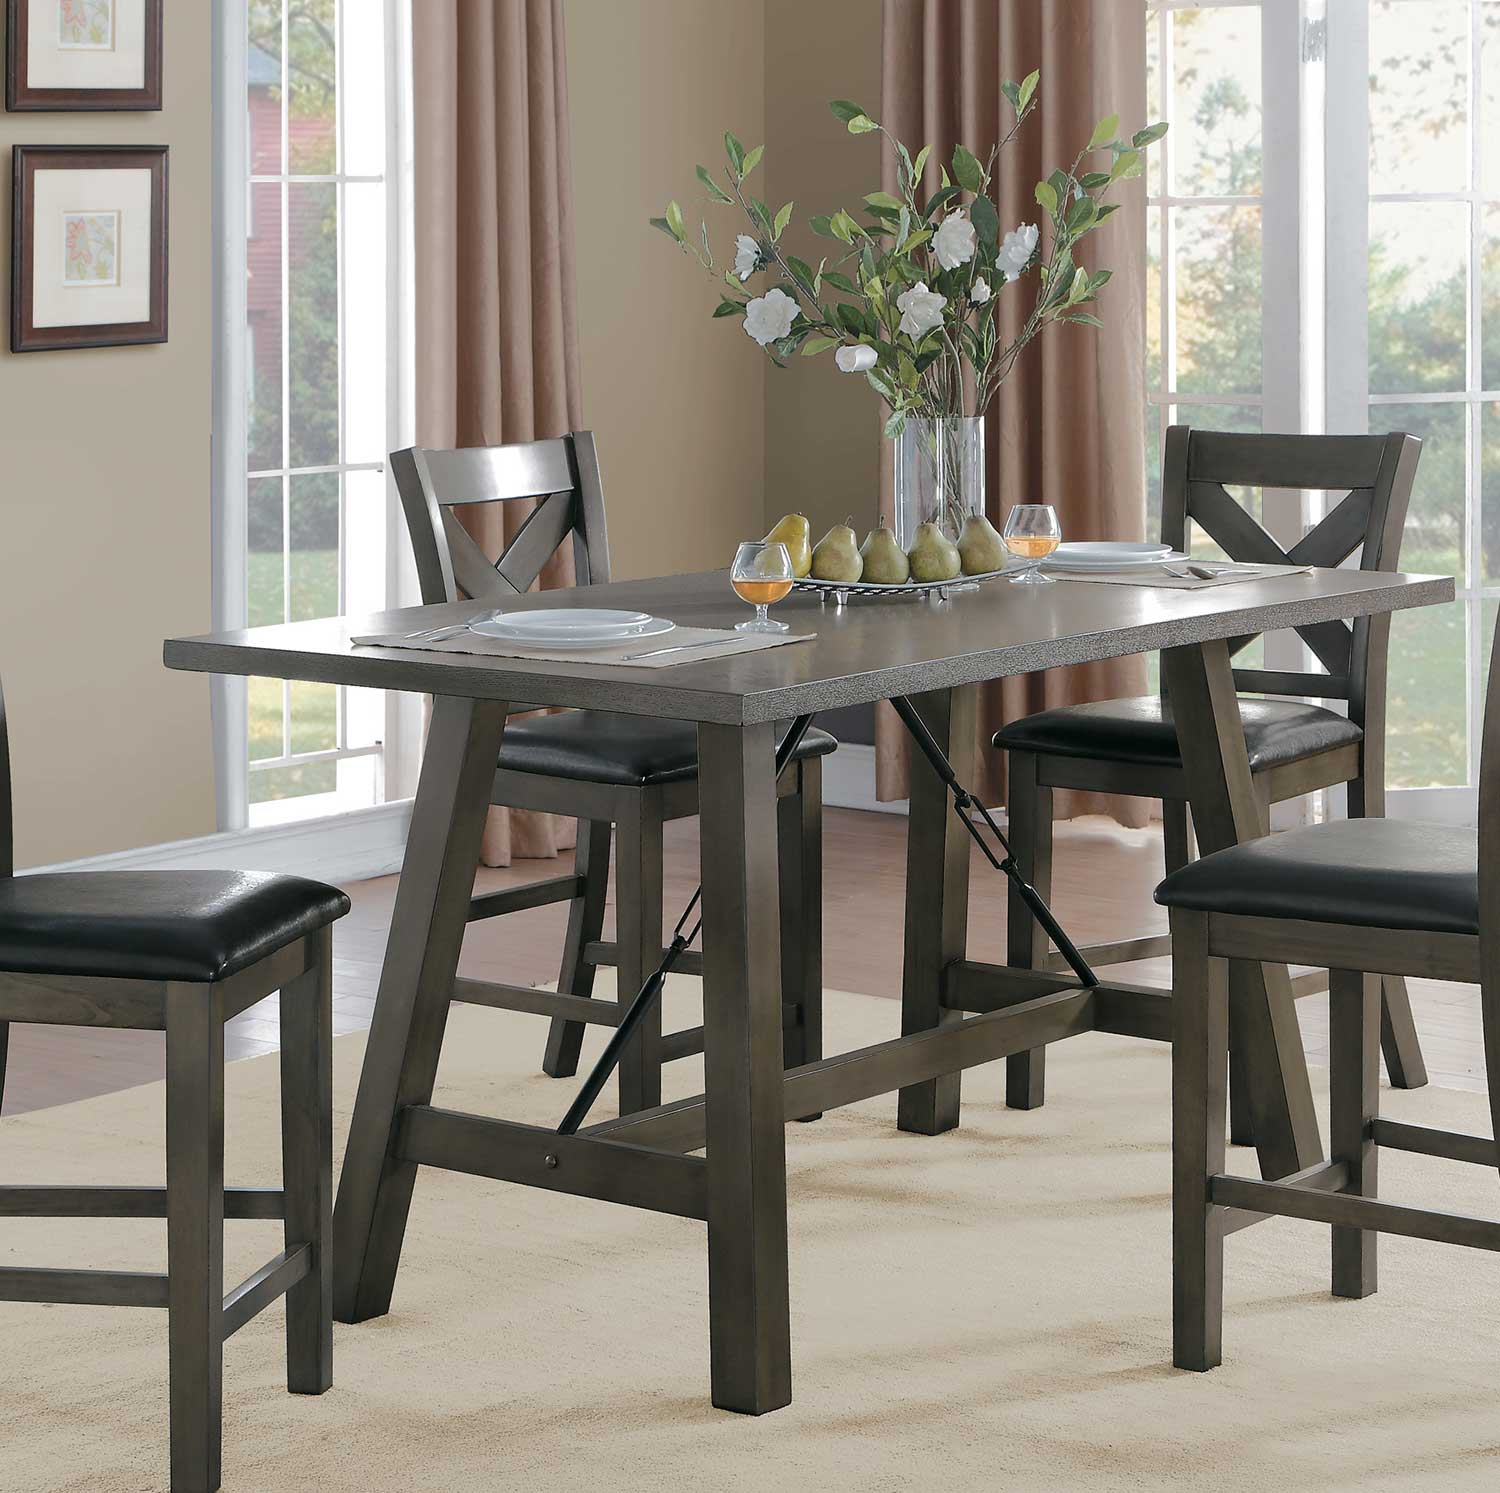 Homelegance Seaford Rectangular Counter Height Dining Set  : HE 5510 36 from www.homelement.com size 1500 x 1493 jpeg 187kB